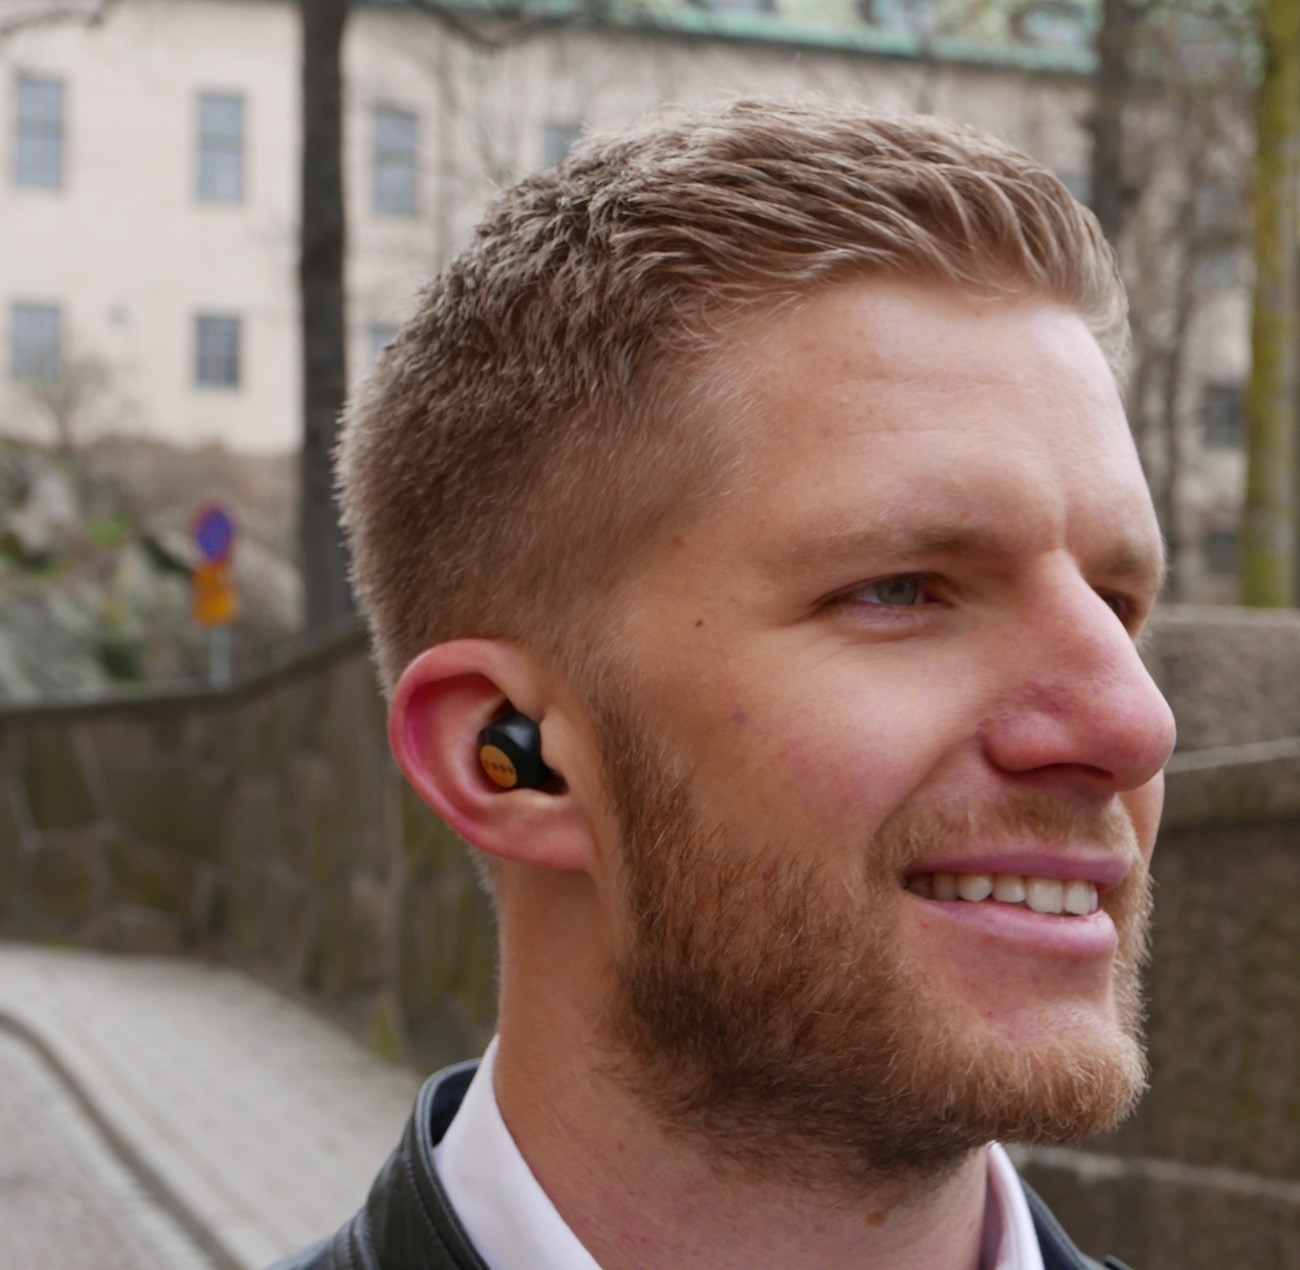 Truu+Earbuds+%26%238211%3B+World%26%238217%3Bs+First+Wirelessly+Charged+Earbuds